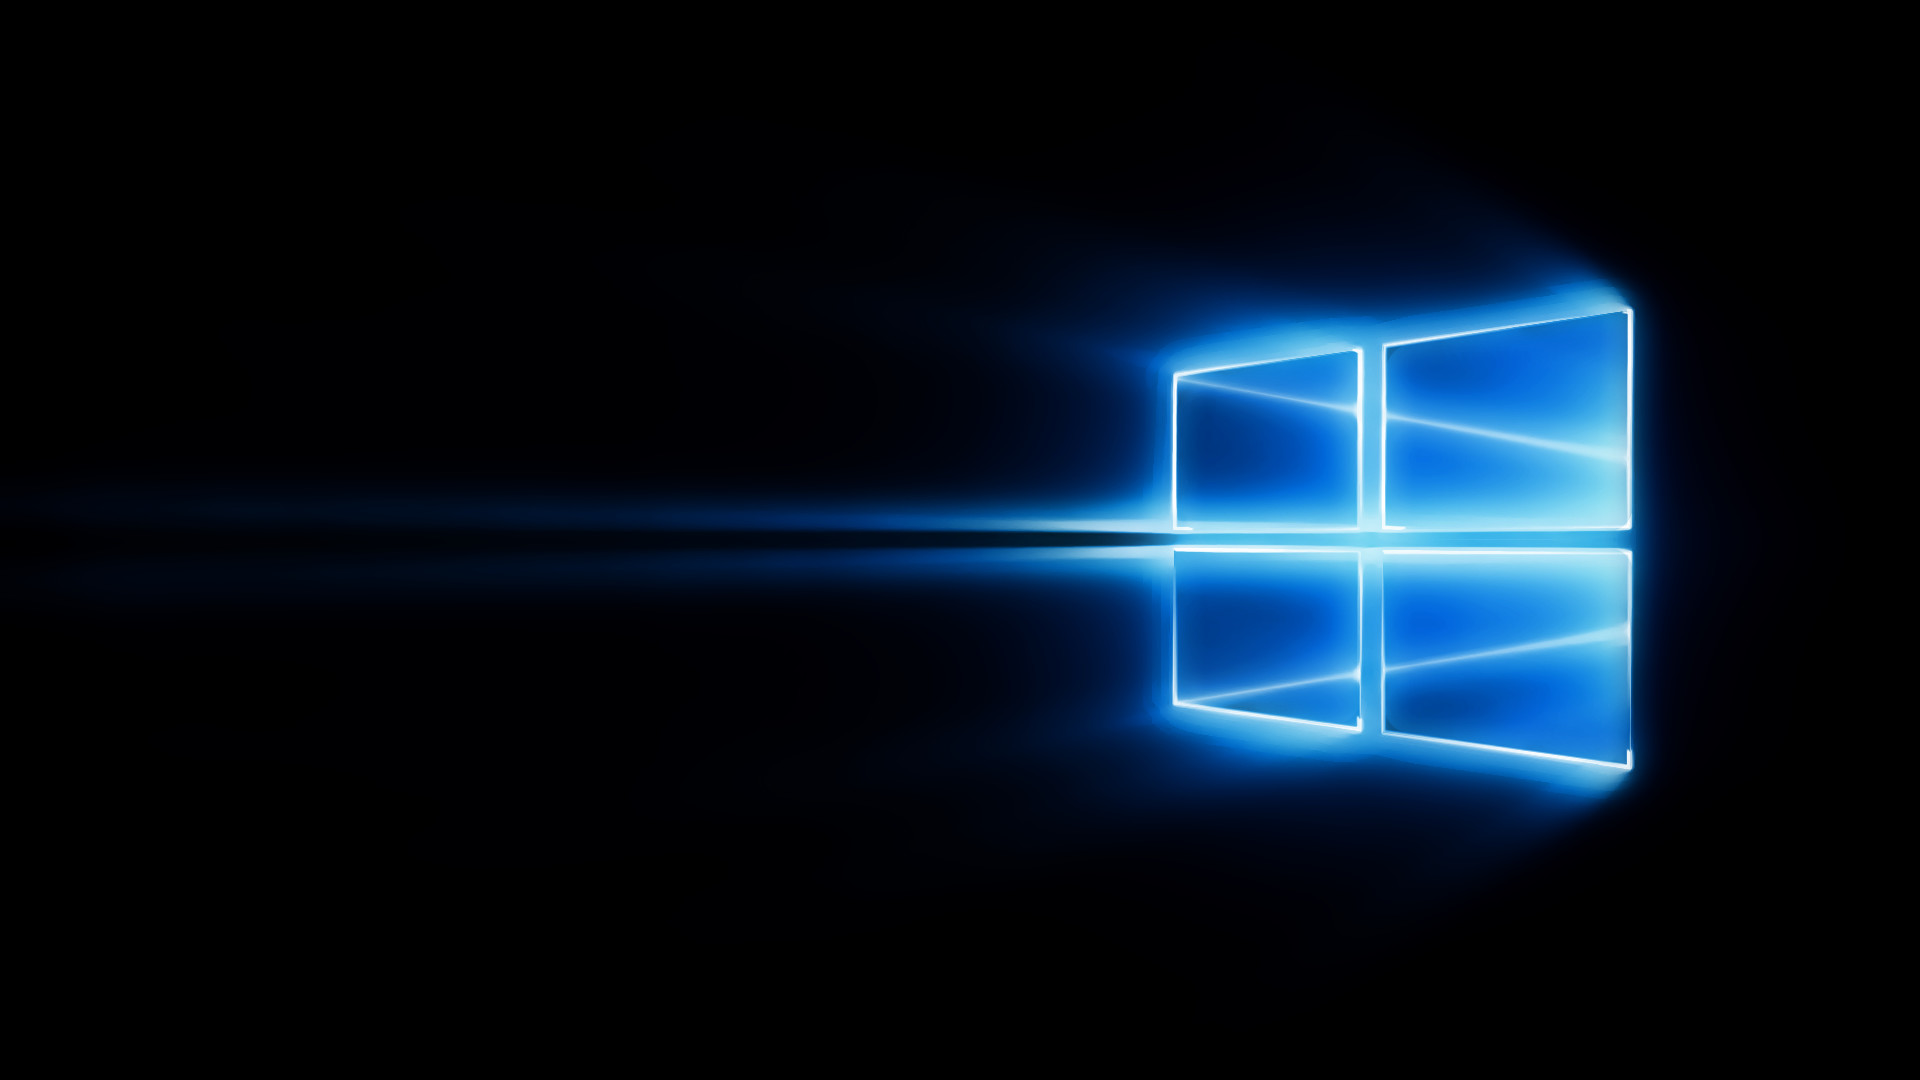 1920x1080 HD Windows 10 Wallpaper | HD Wallpapers Pulse